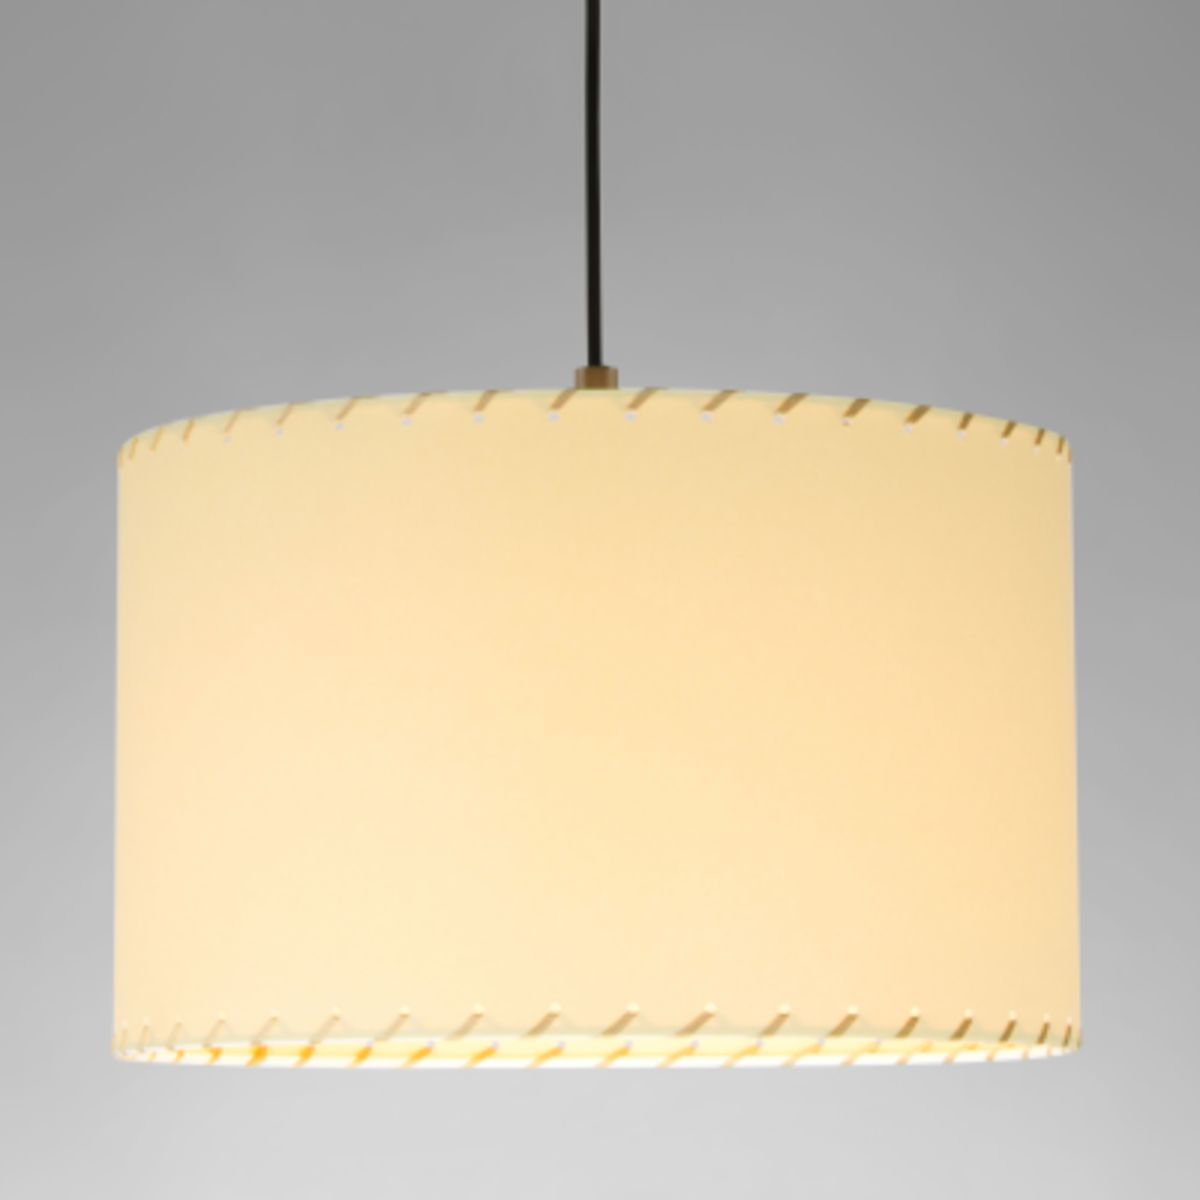 dd80d44fe499e Sistema Sisisi PT2 Pendant Light Satin nickel, Stitched beiged parchment